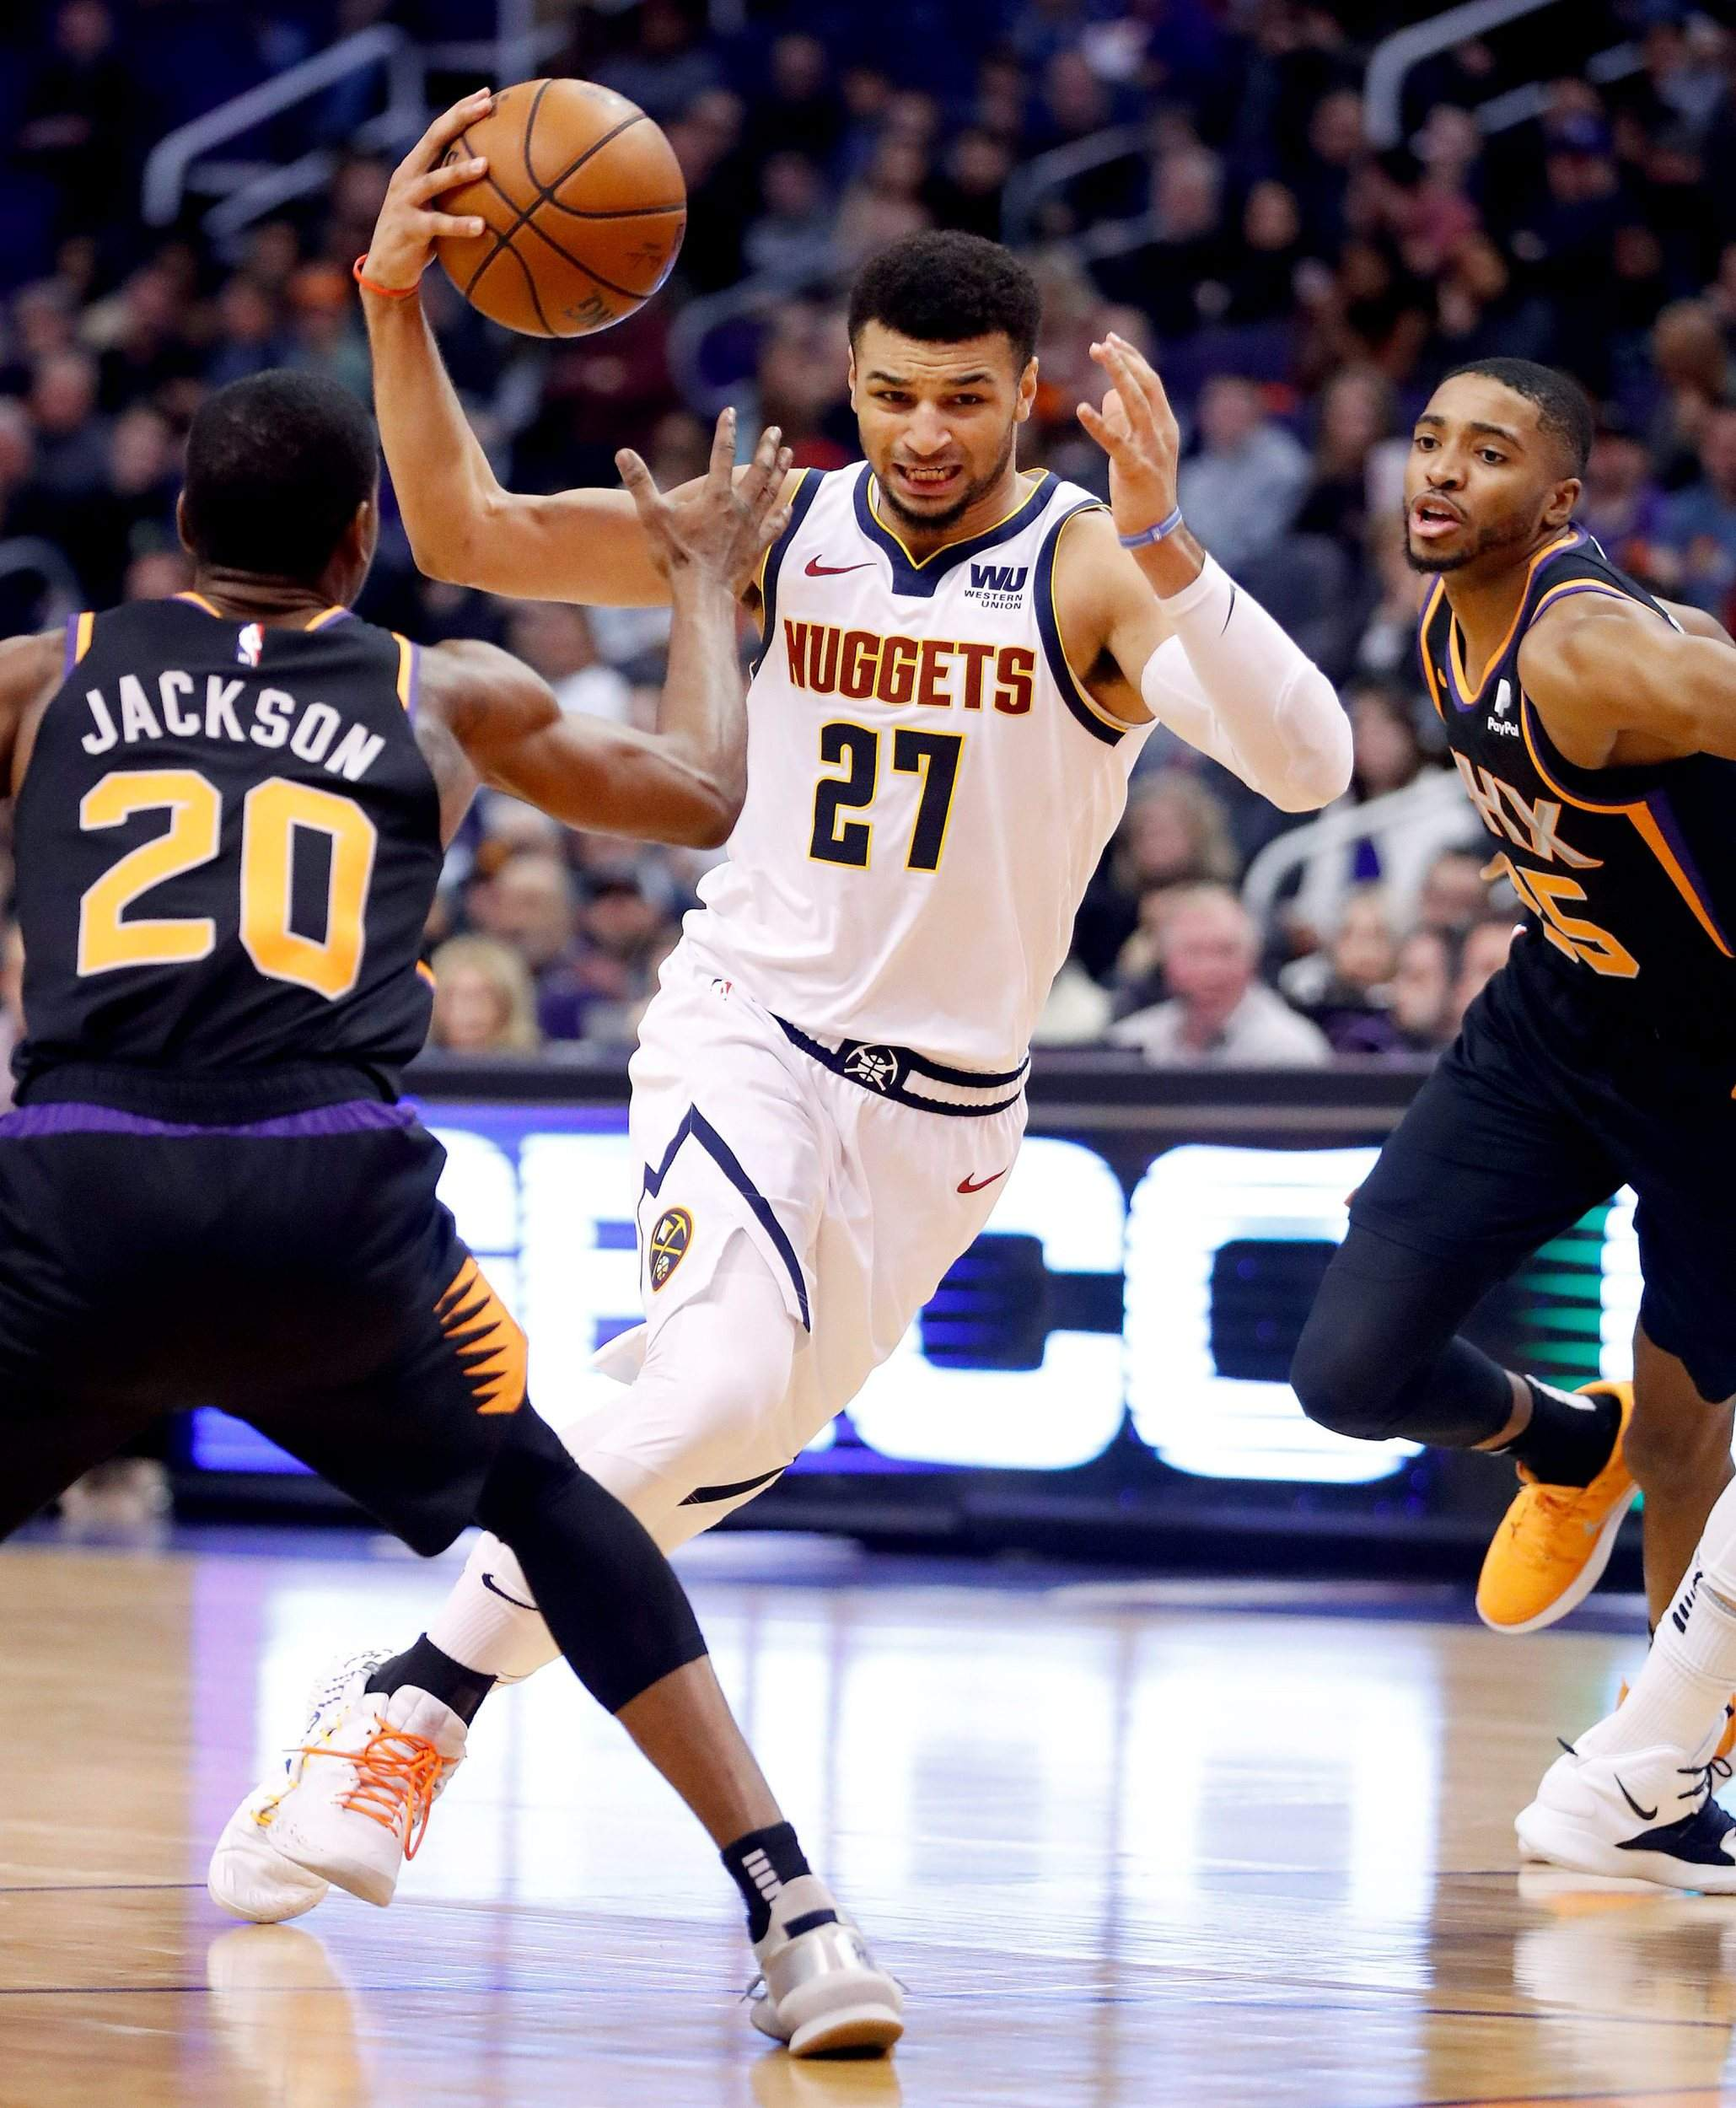 Denver Nuggets Guards: Jamal Murray's 3-point Shooting Helps Nuggets Block Suns